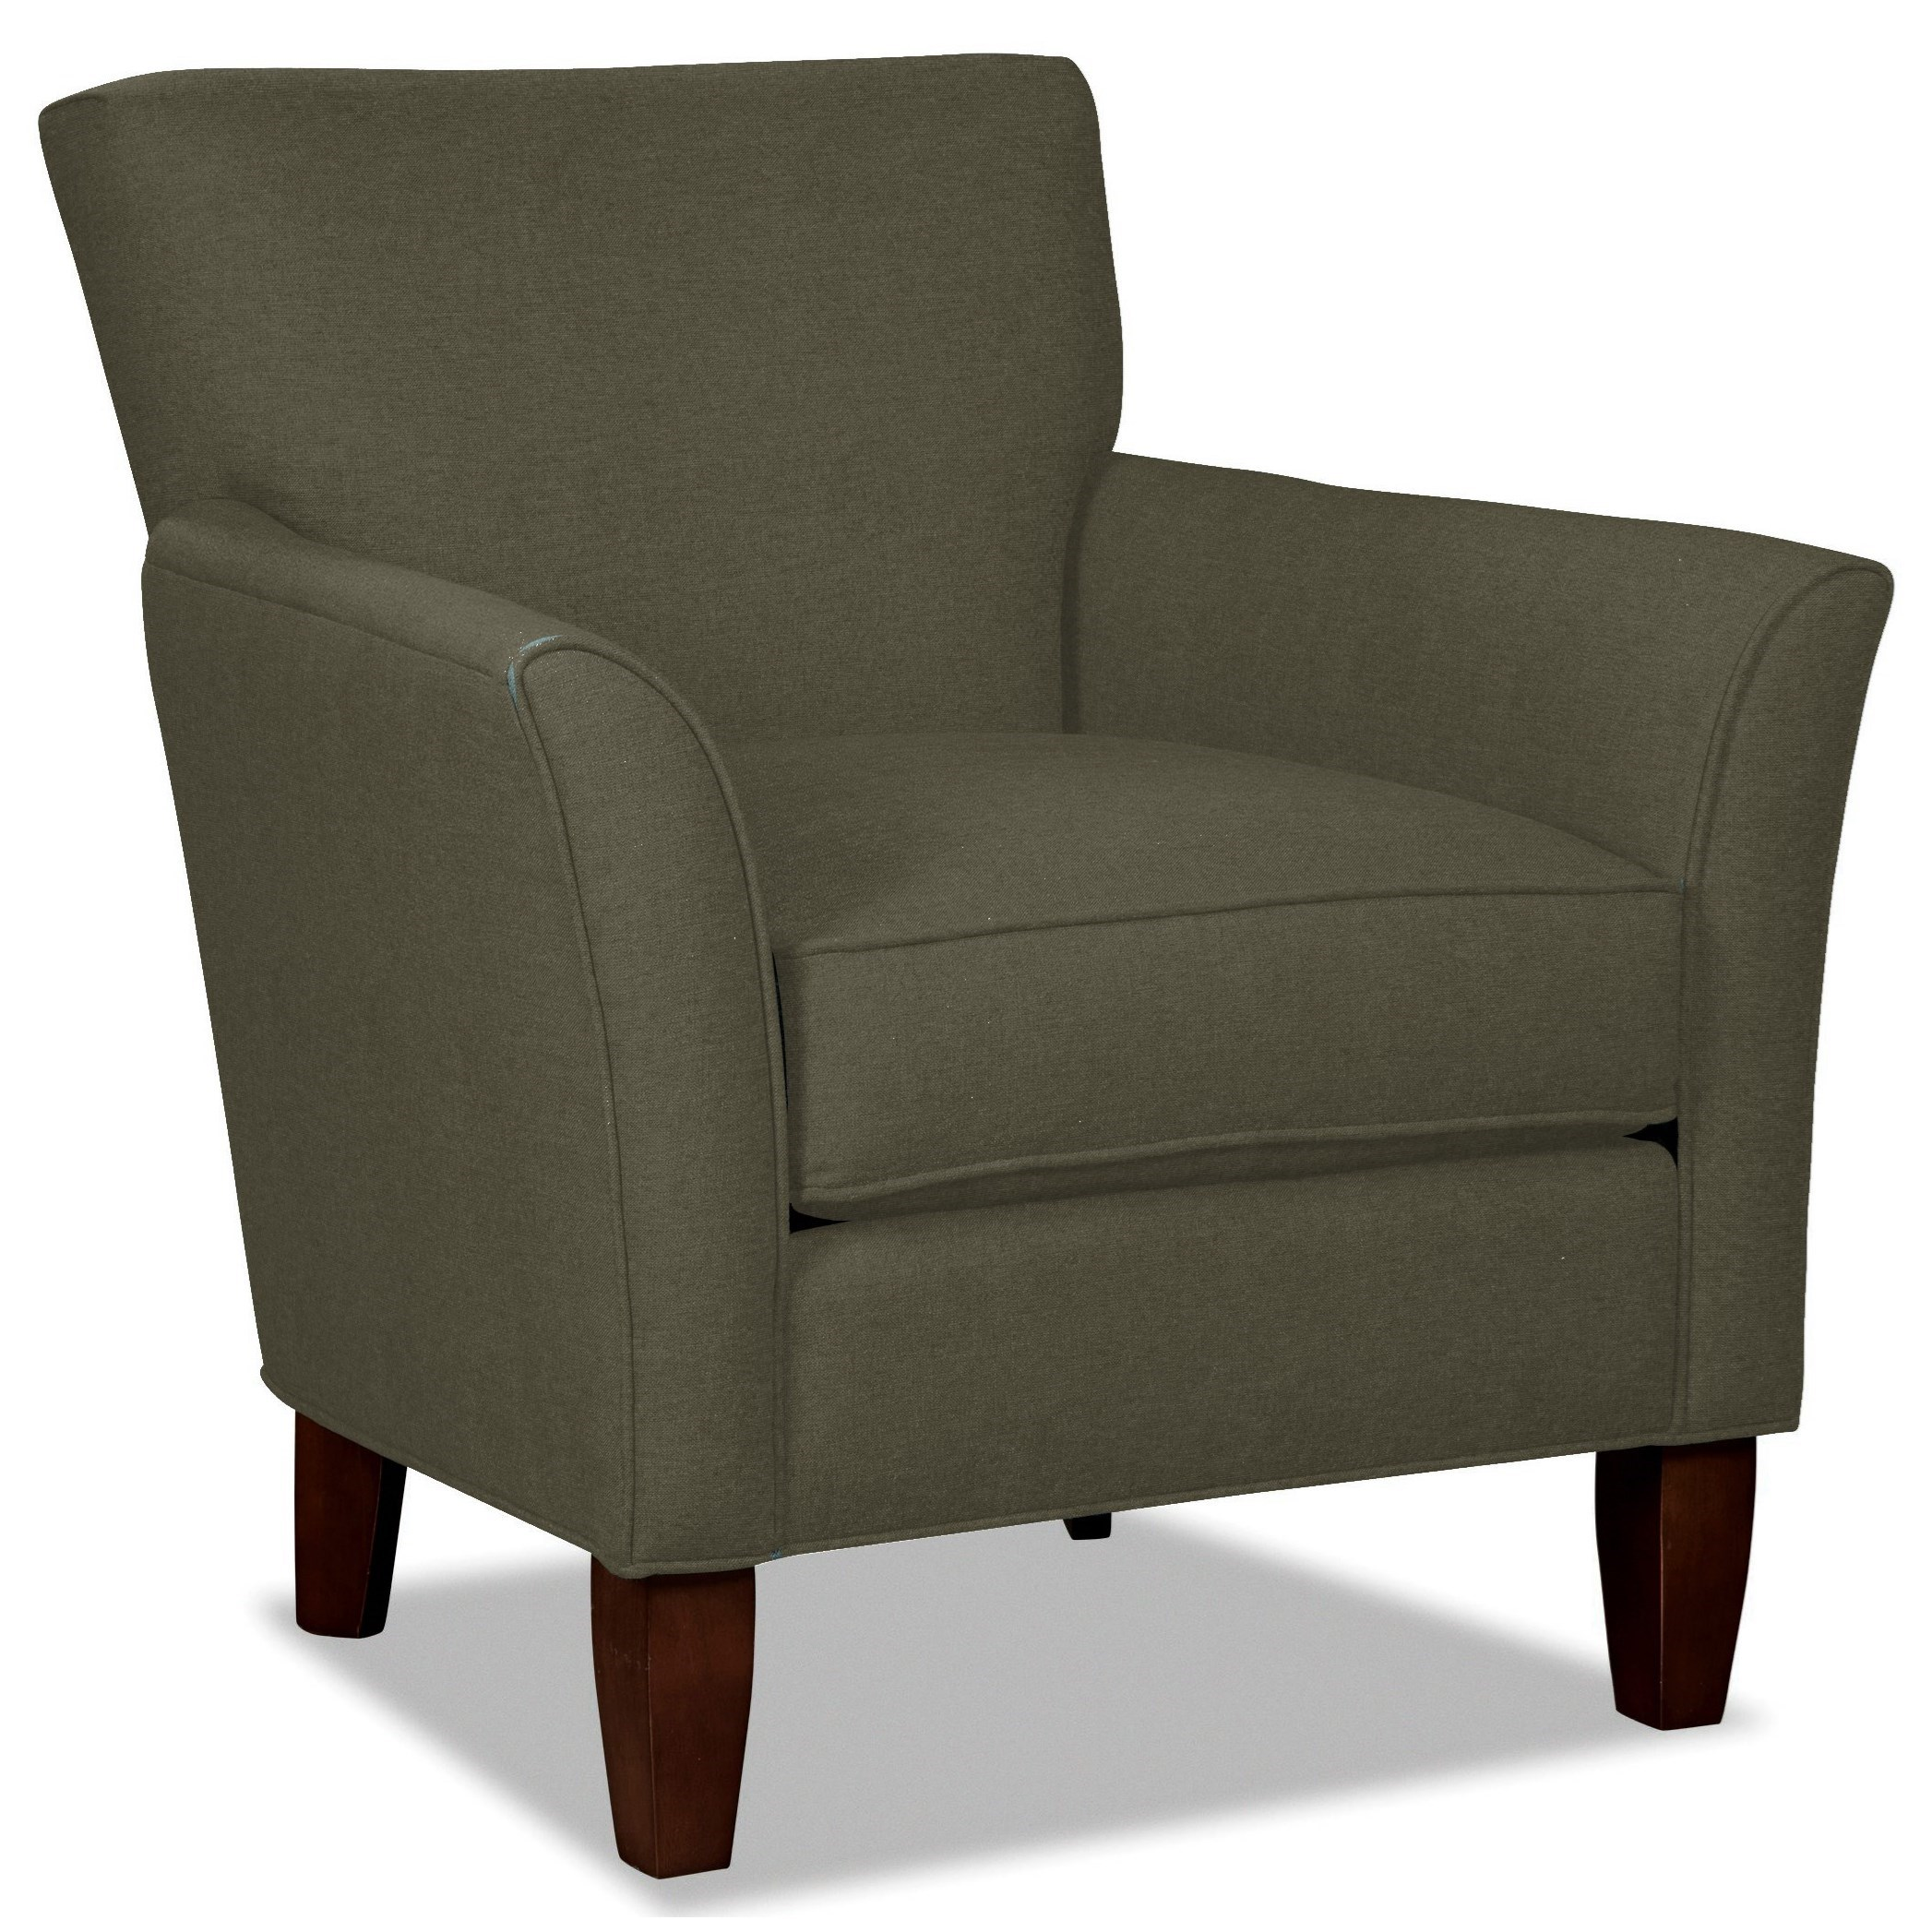 Craftmaster 060110 Accent Chair - Item Number: 060110-PLANTATION-22